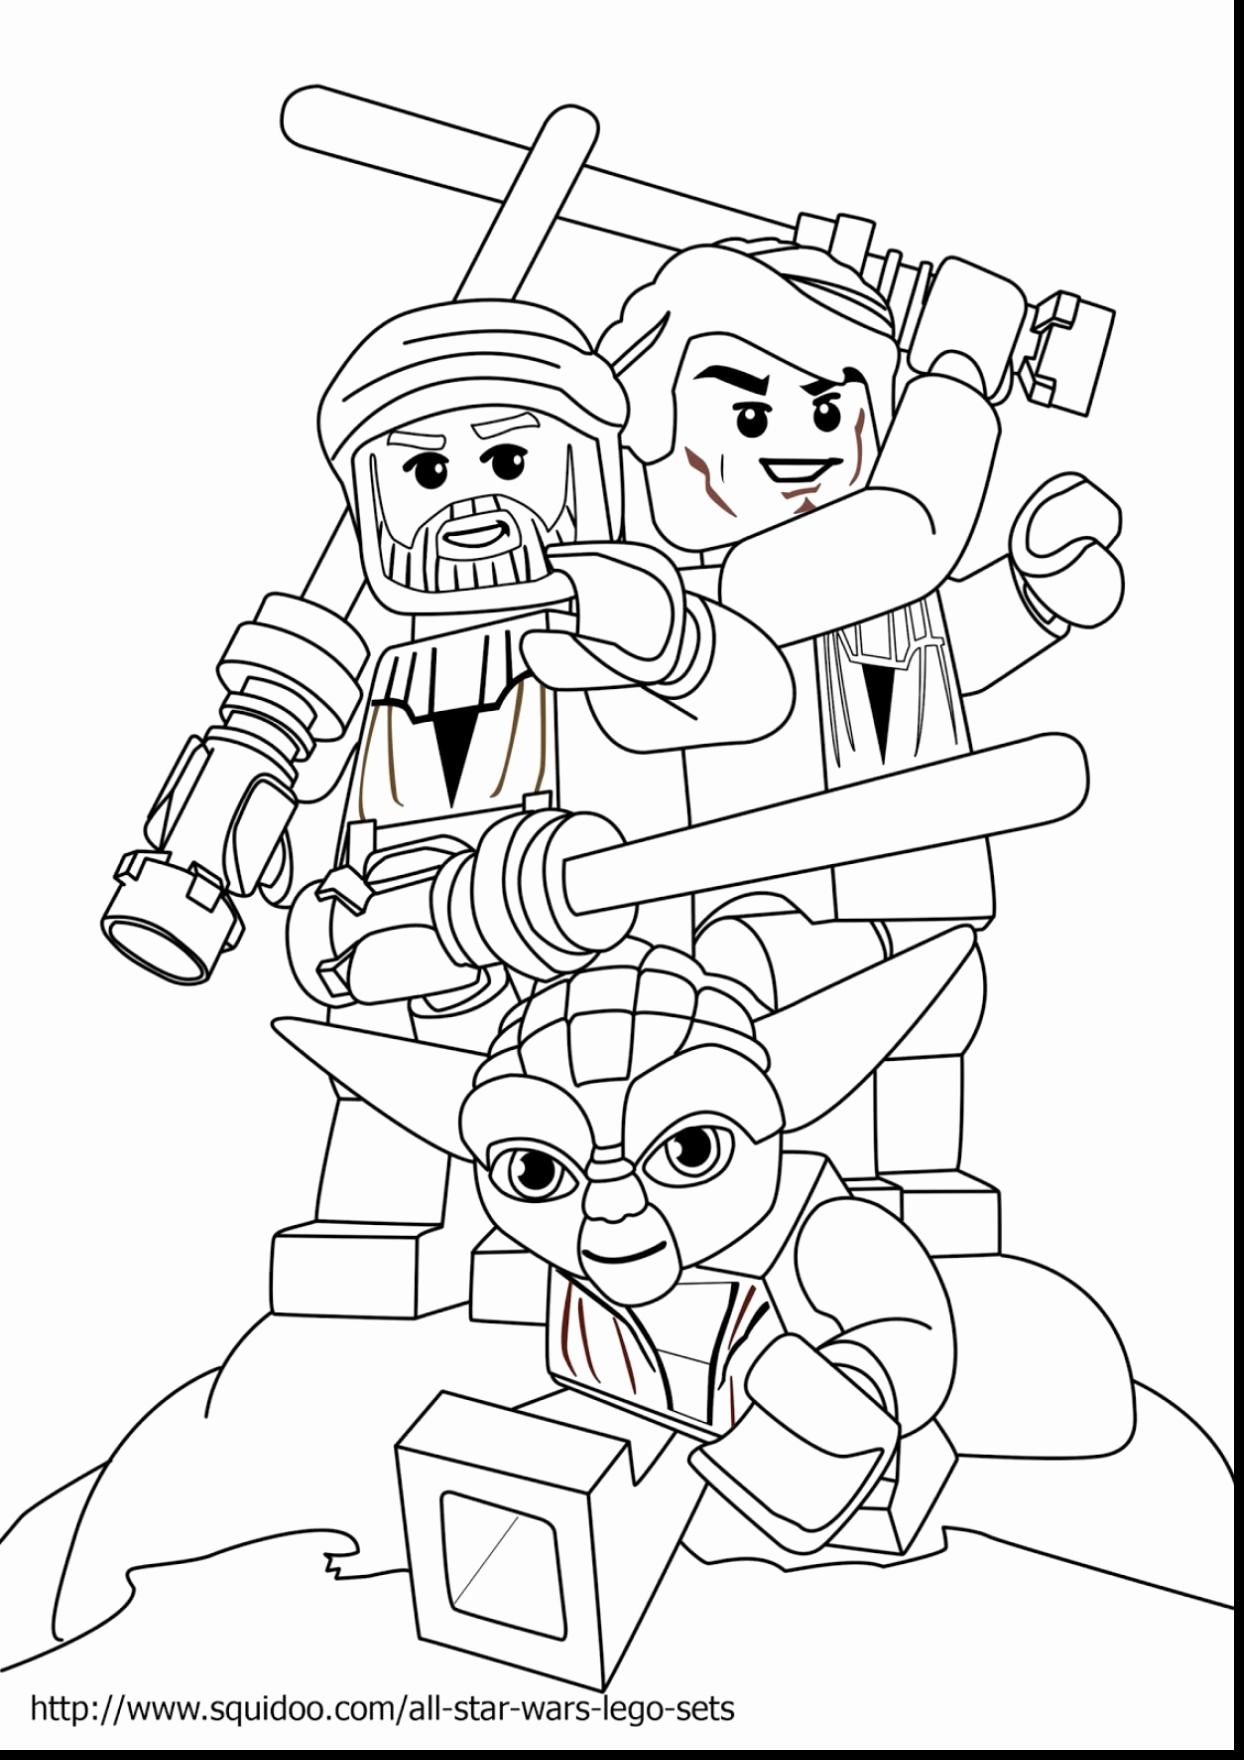 Coloring Pages For Kids Lego In 2020 Star Wars Coloring Sheet Lego Coloring Pages Star Coloring Pages